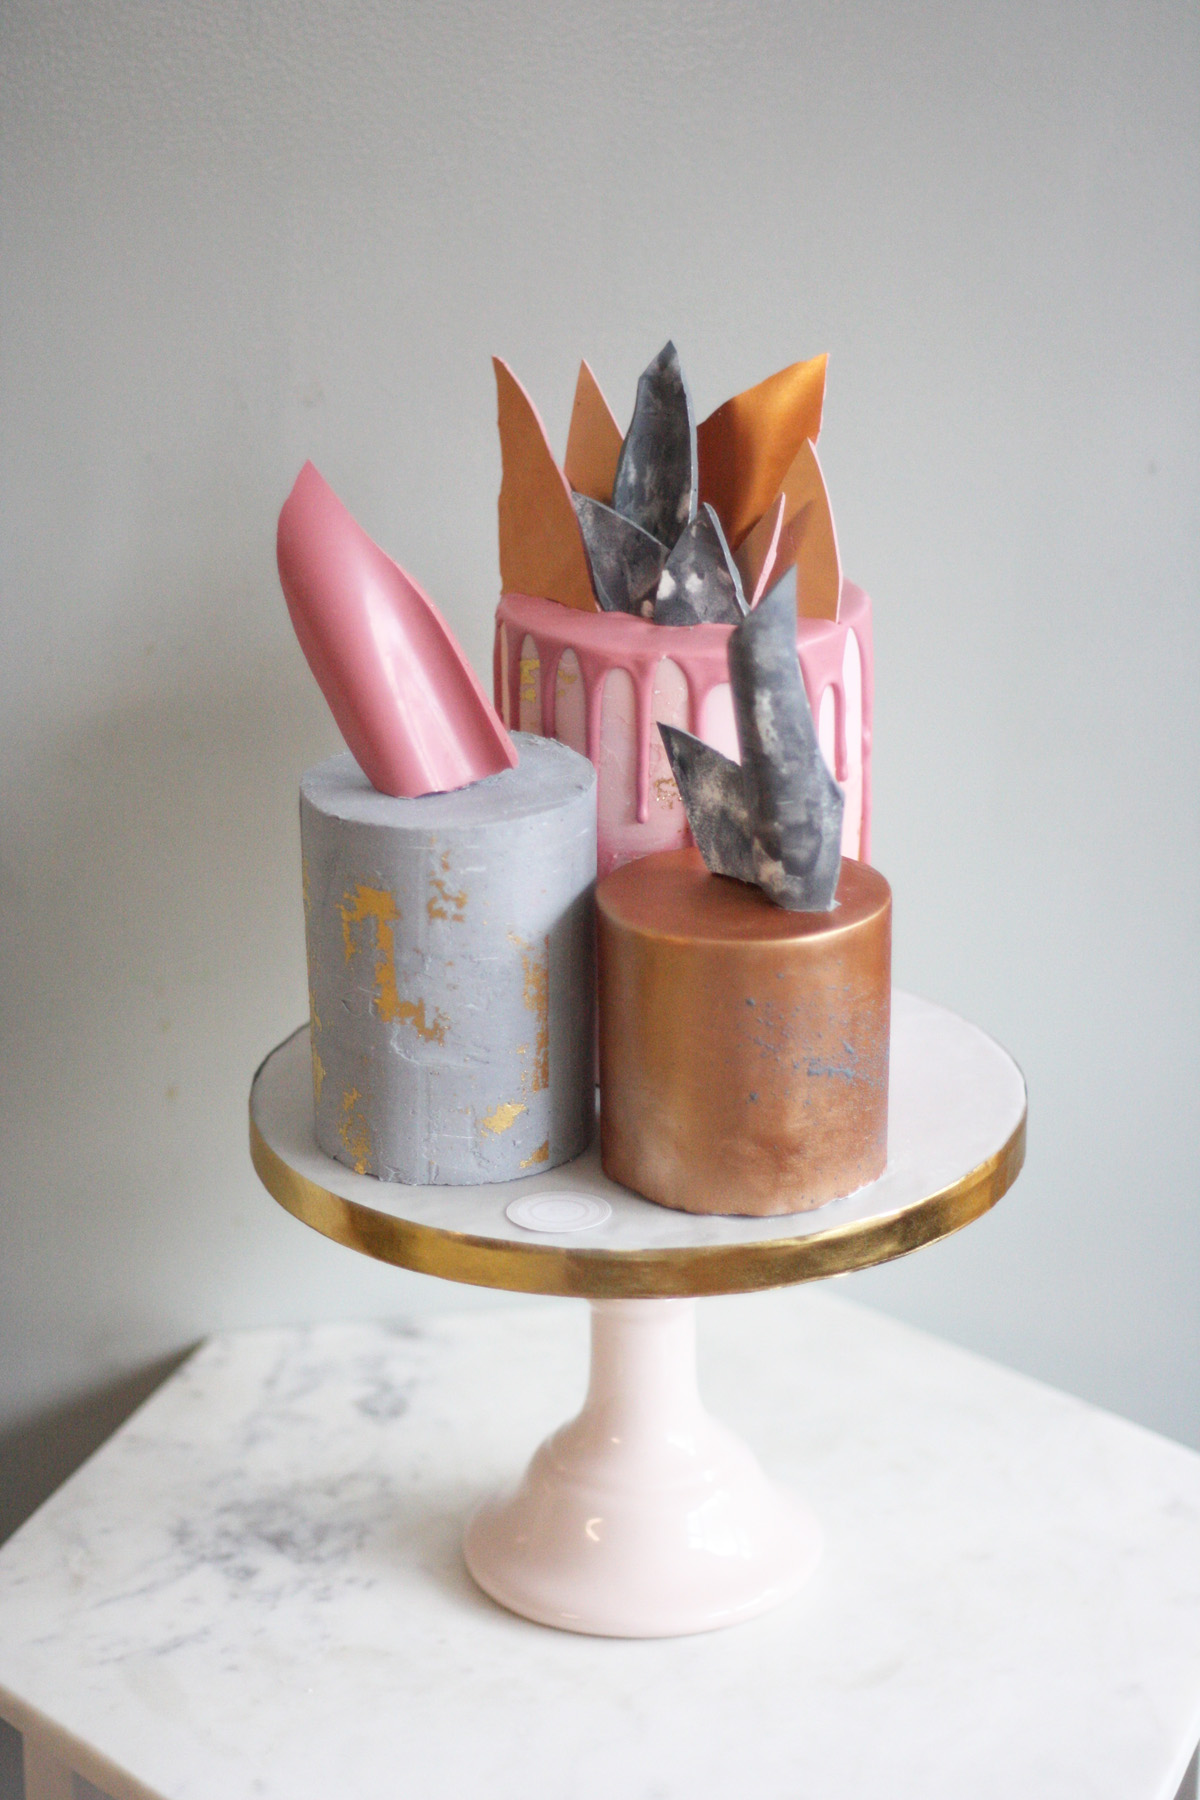 Chocolate shards- the non traditional modern cake topper